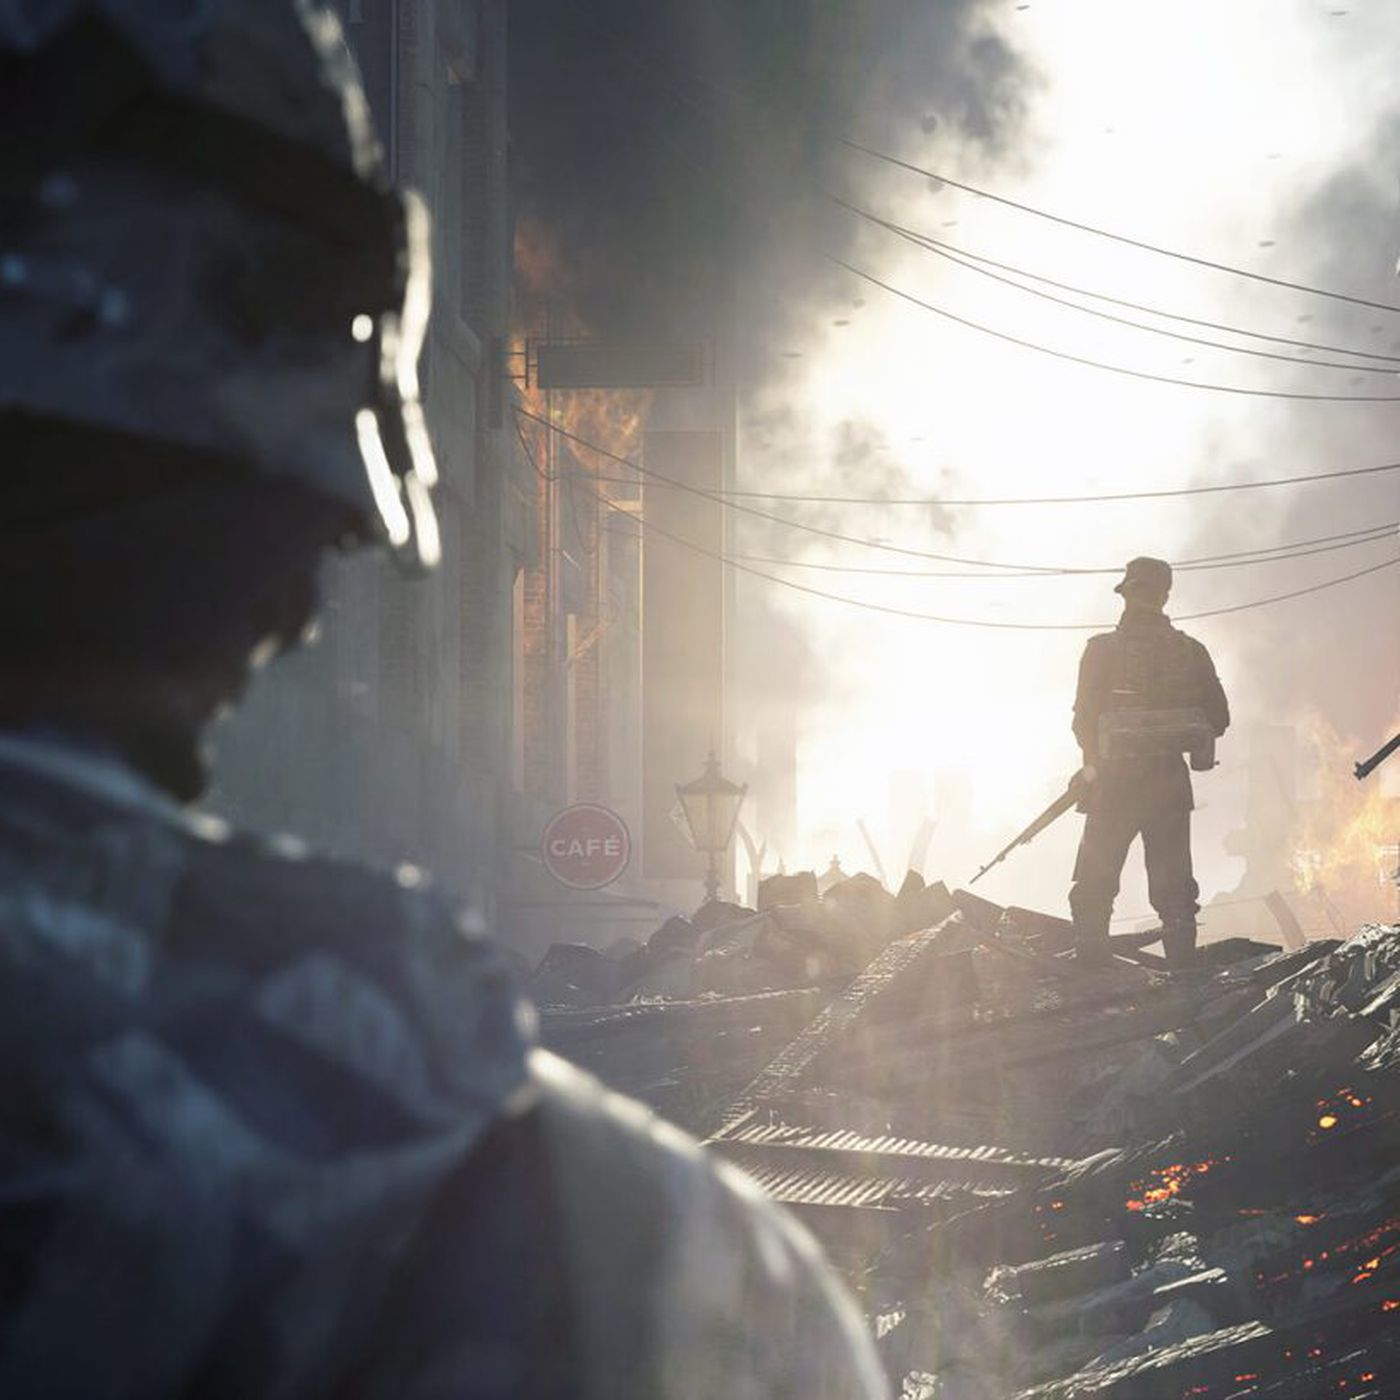 Nvidia RTX: Watch Battlefield 5 & Shadow of the Tomb Raider use real